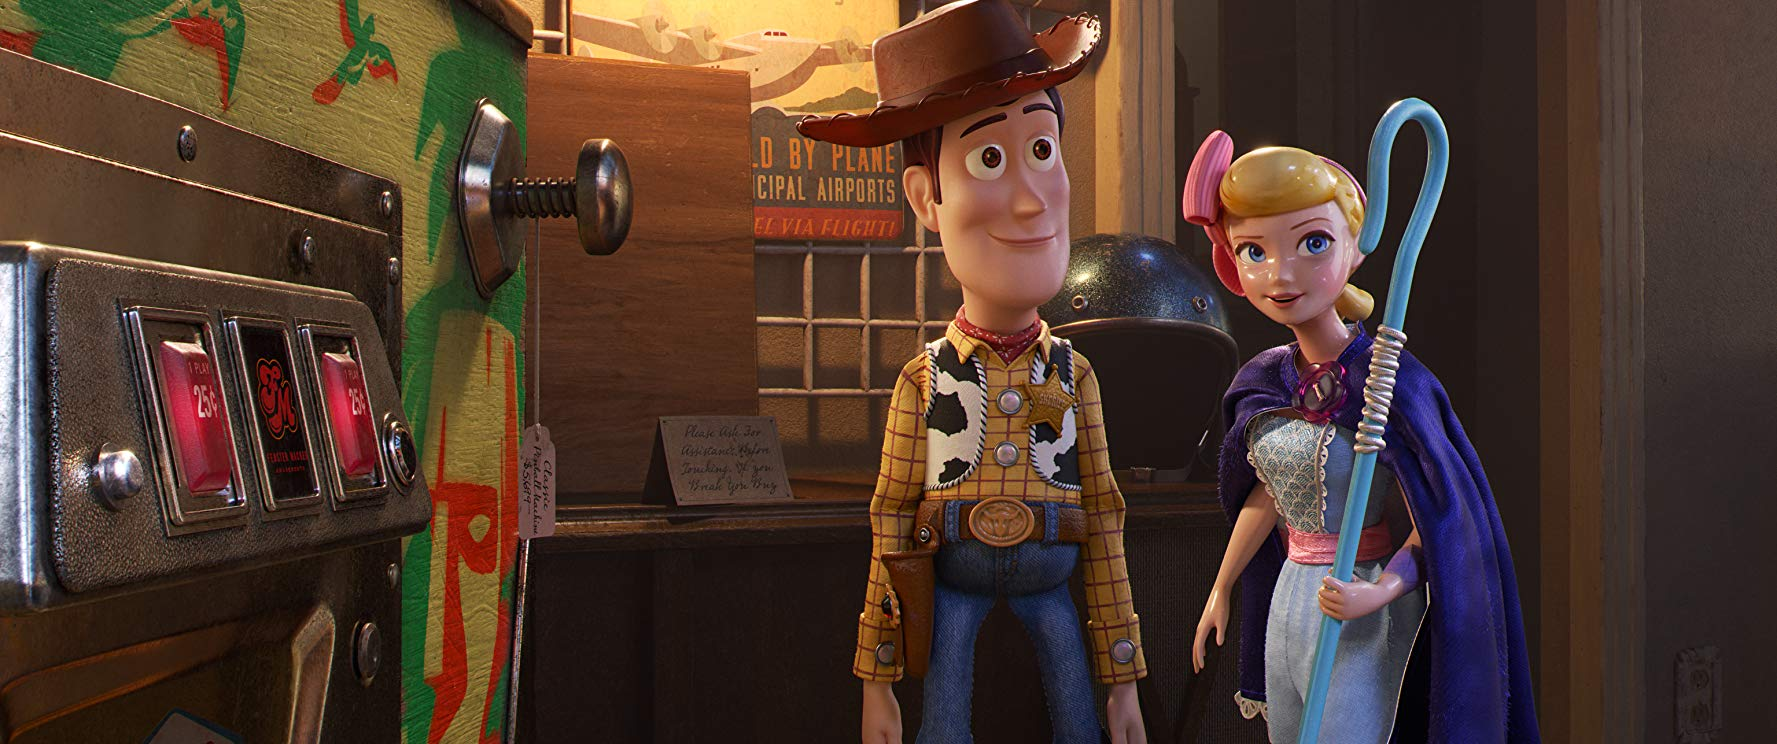 Tom Hanks and Annie Potts in Toy Story 4